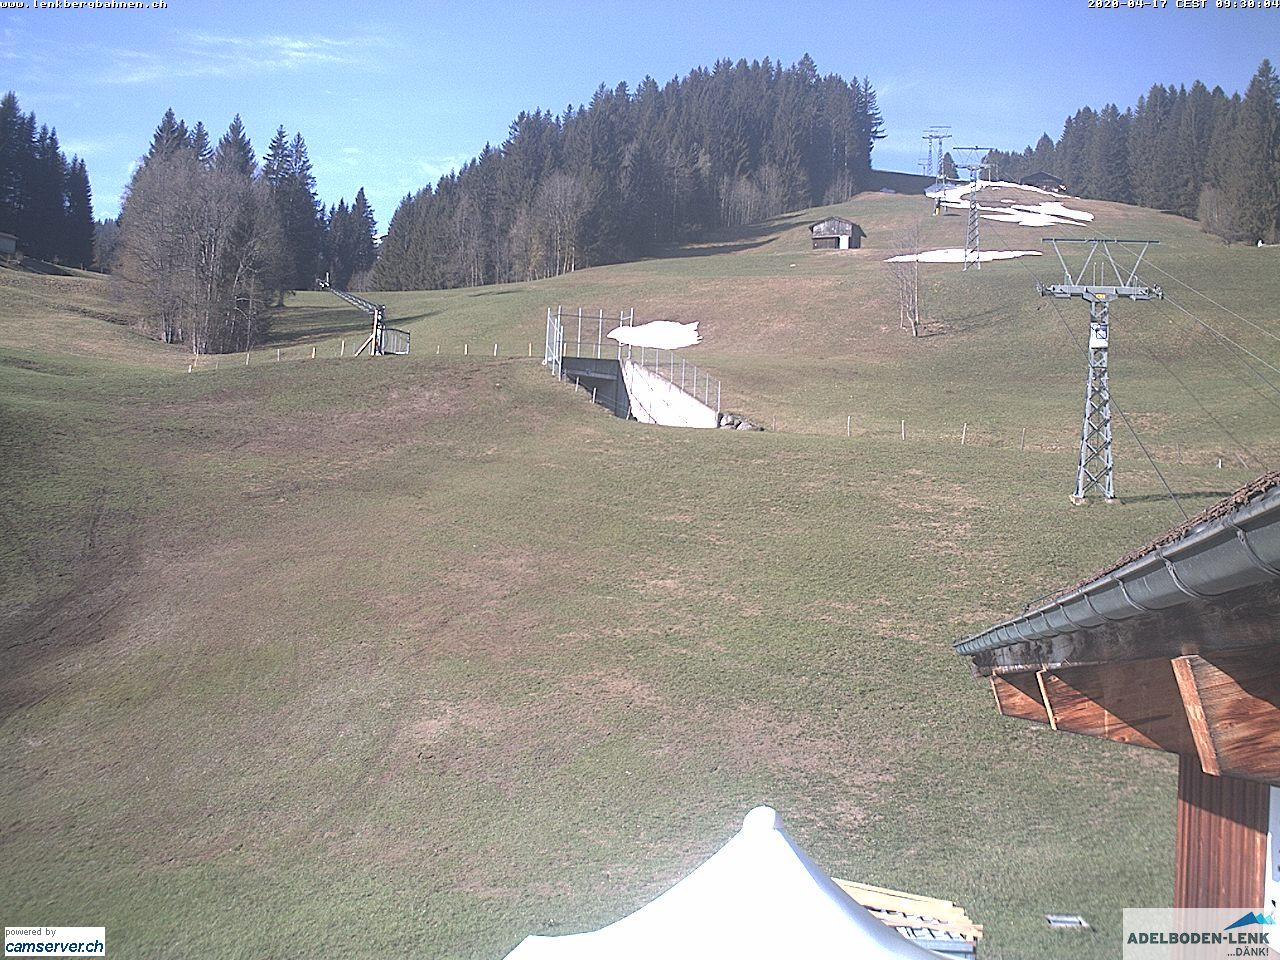 Webcams de Adelboden - Lenk (Suiza)